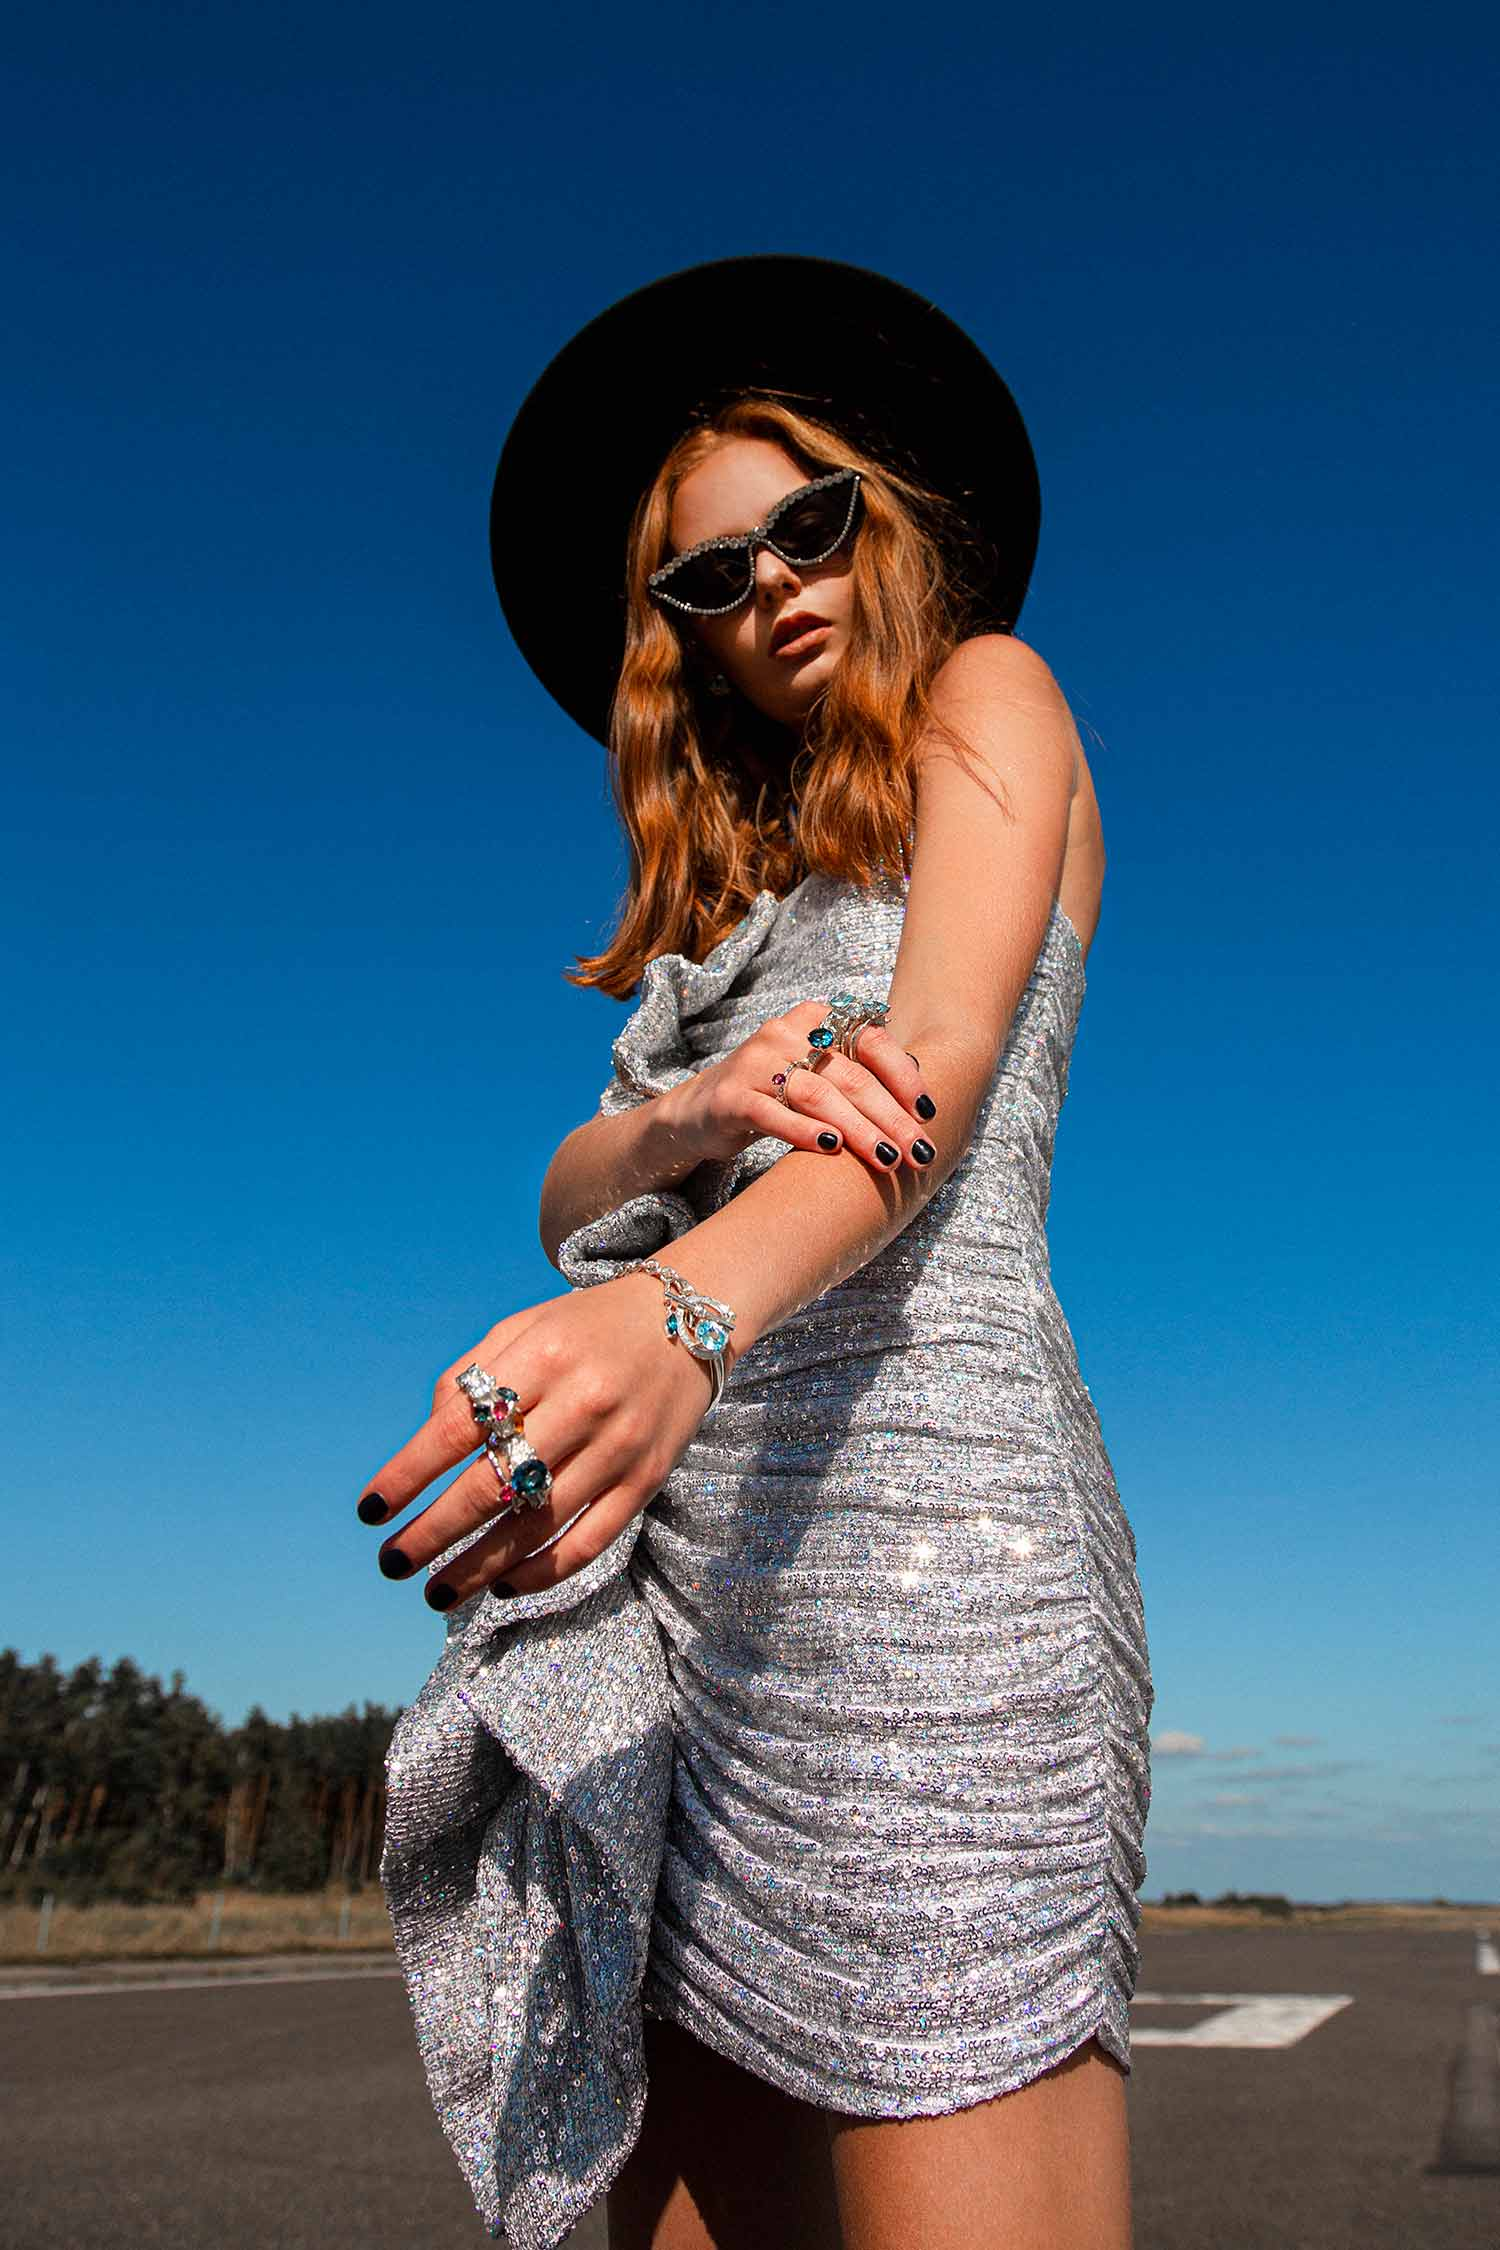 Model on the road, wearing shiny dress, cowboy hat, sunglasses and Zydrune high-end jewellery.